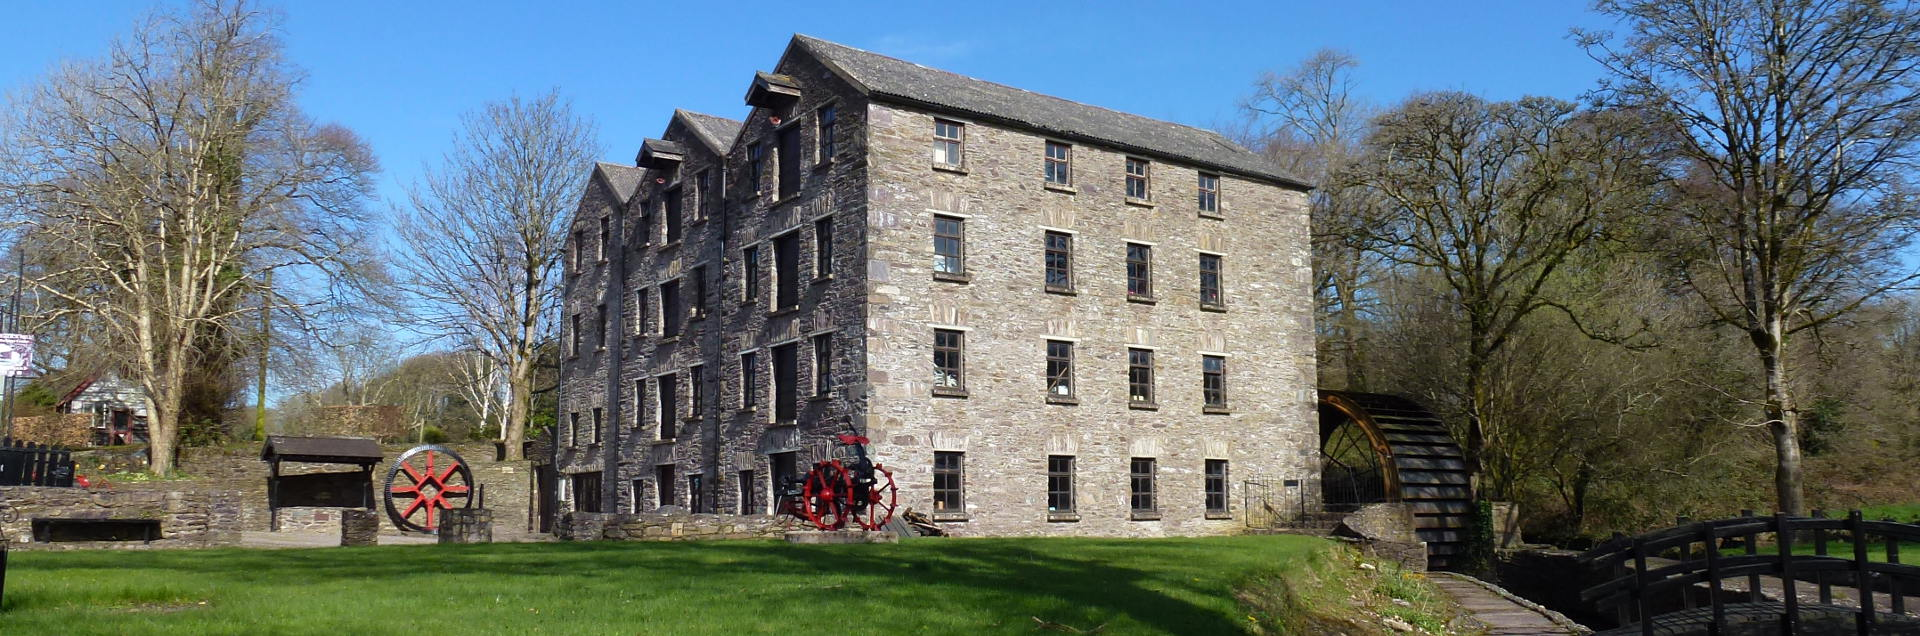 Bealick Mill Macroom